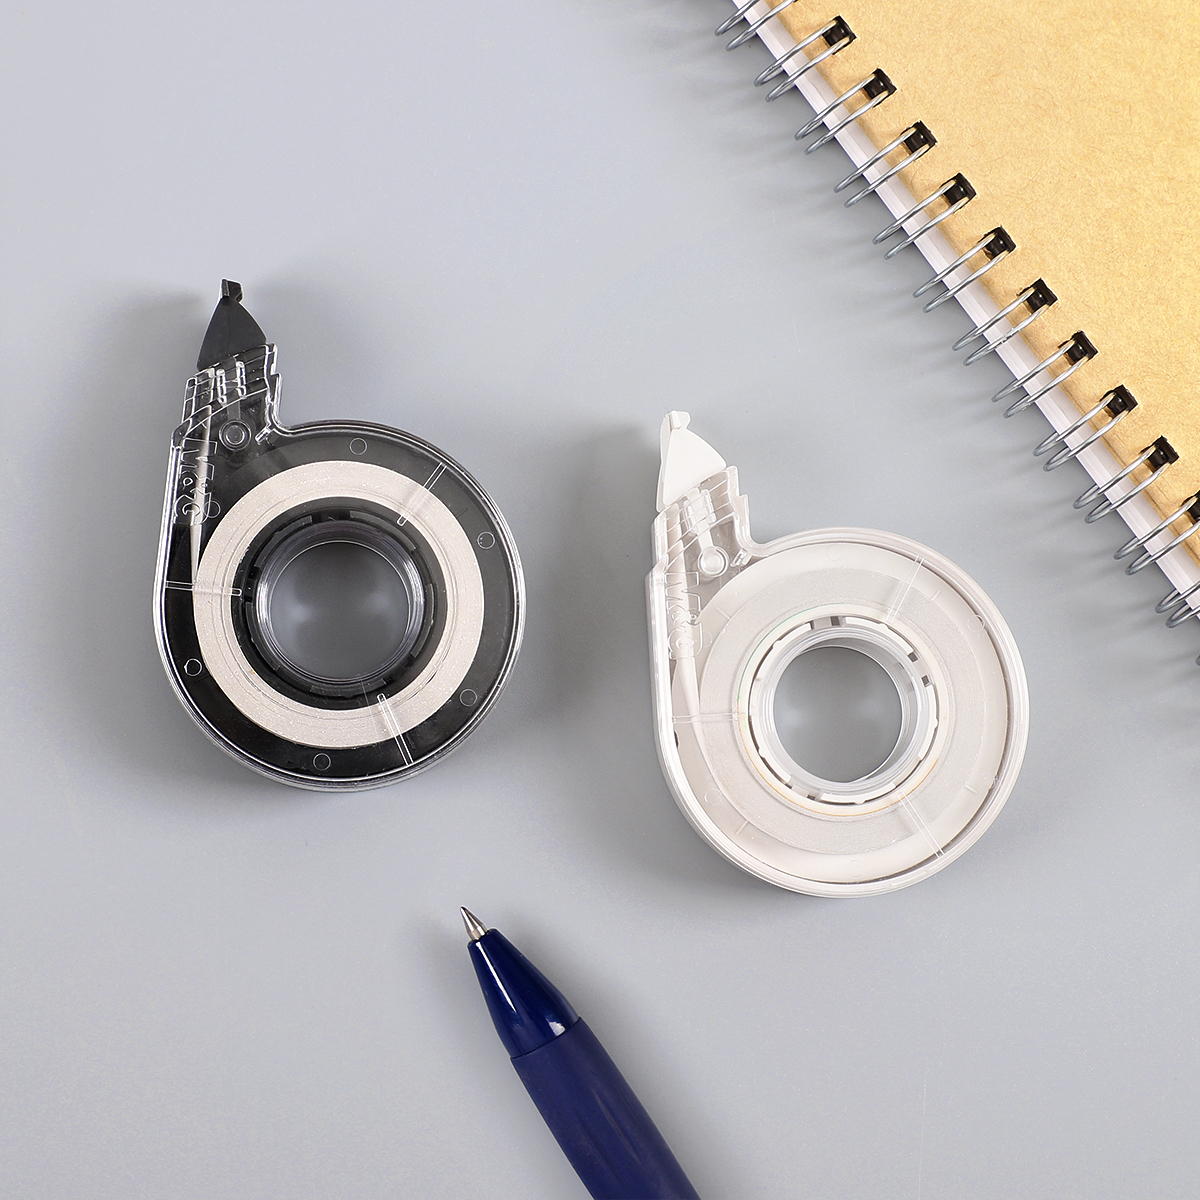 JIANWU 1PC 12m Simple Style Correction Tape Student Stationery High-capacity Modify Tape Kawaii School Supplies